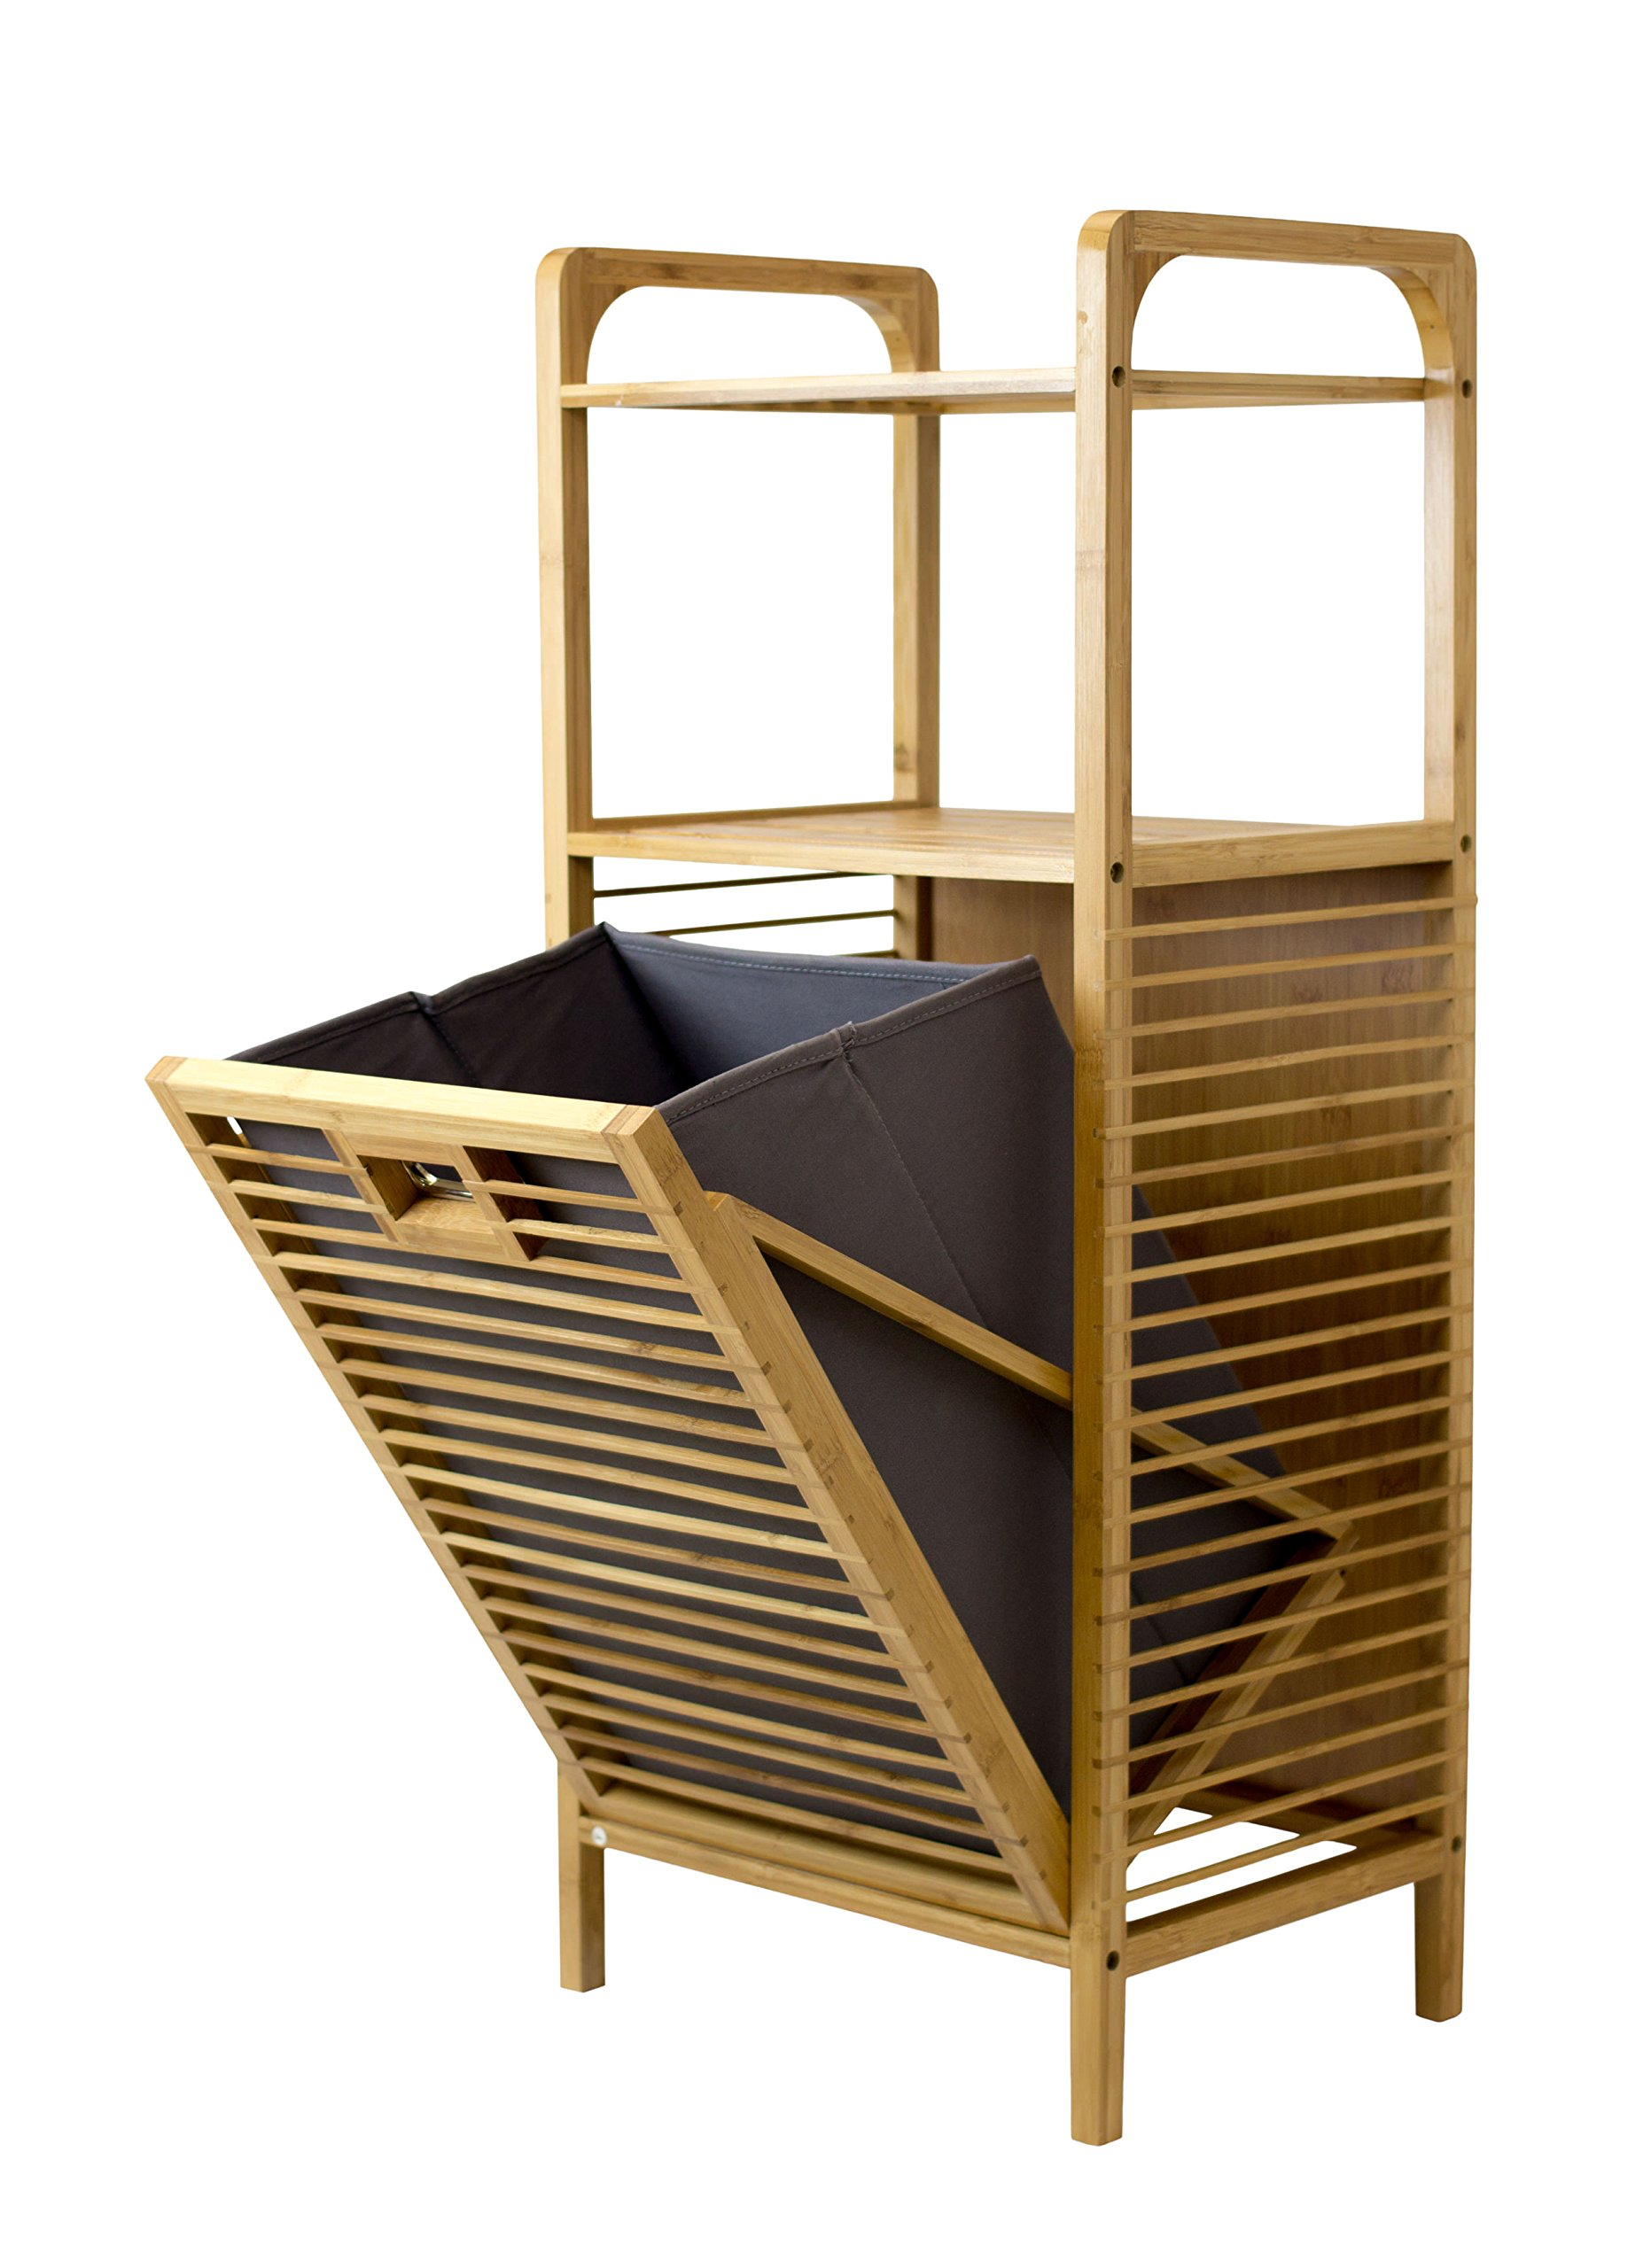 SpaceMaster Laundry Storage Hamper Bamboo Tilt, Brown - Compliment your laundry room décor with the SpaceMaster genuine bamboo laundry hamper with tilt and shelves. Designed with an elegant and rustic appeal, it is both practical and a complimentary laundry room addition that provides both extra storage and keeps laundry out of sight This freestanding fold out laundry room hamper with 2 shelves measures 12.6X 16X 38And weighs approximately 11 pounds and requires simple assembly after delivery Made of genuine bamboo for a reliable and sturdy frame, the stained bamboo finish creates a natural look and rustic feel. Built with magnets to keep the hamper closed - laundry-room, hampers-baskets, entryway-laundry-room - 817%2BxuDjzXL -